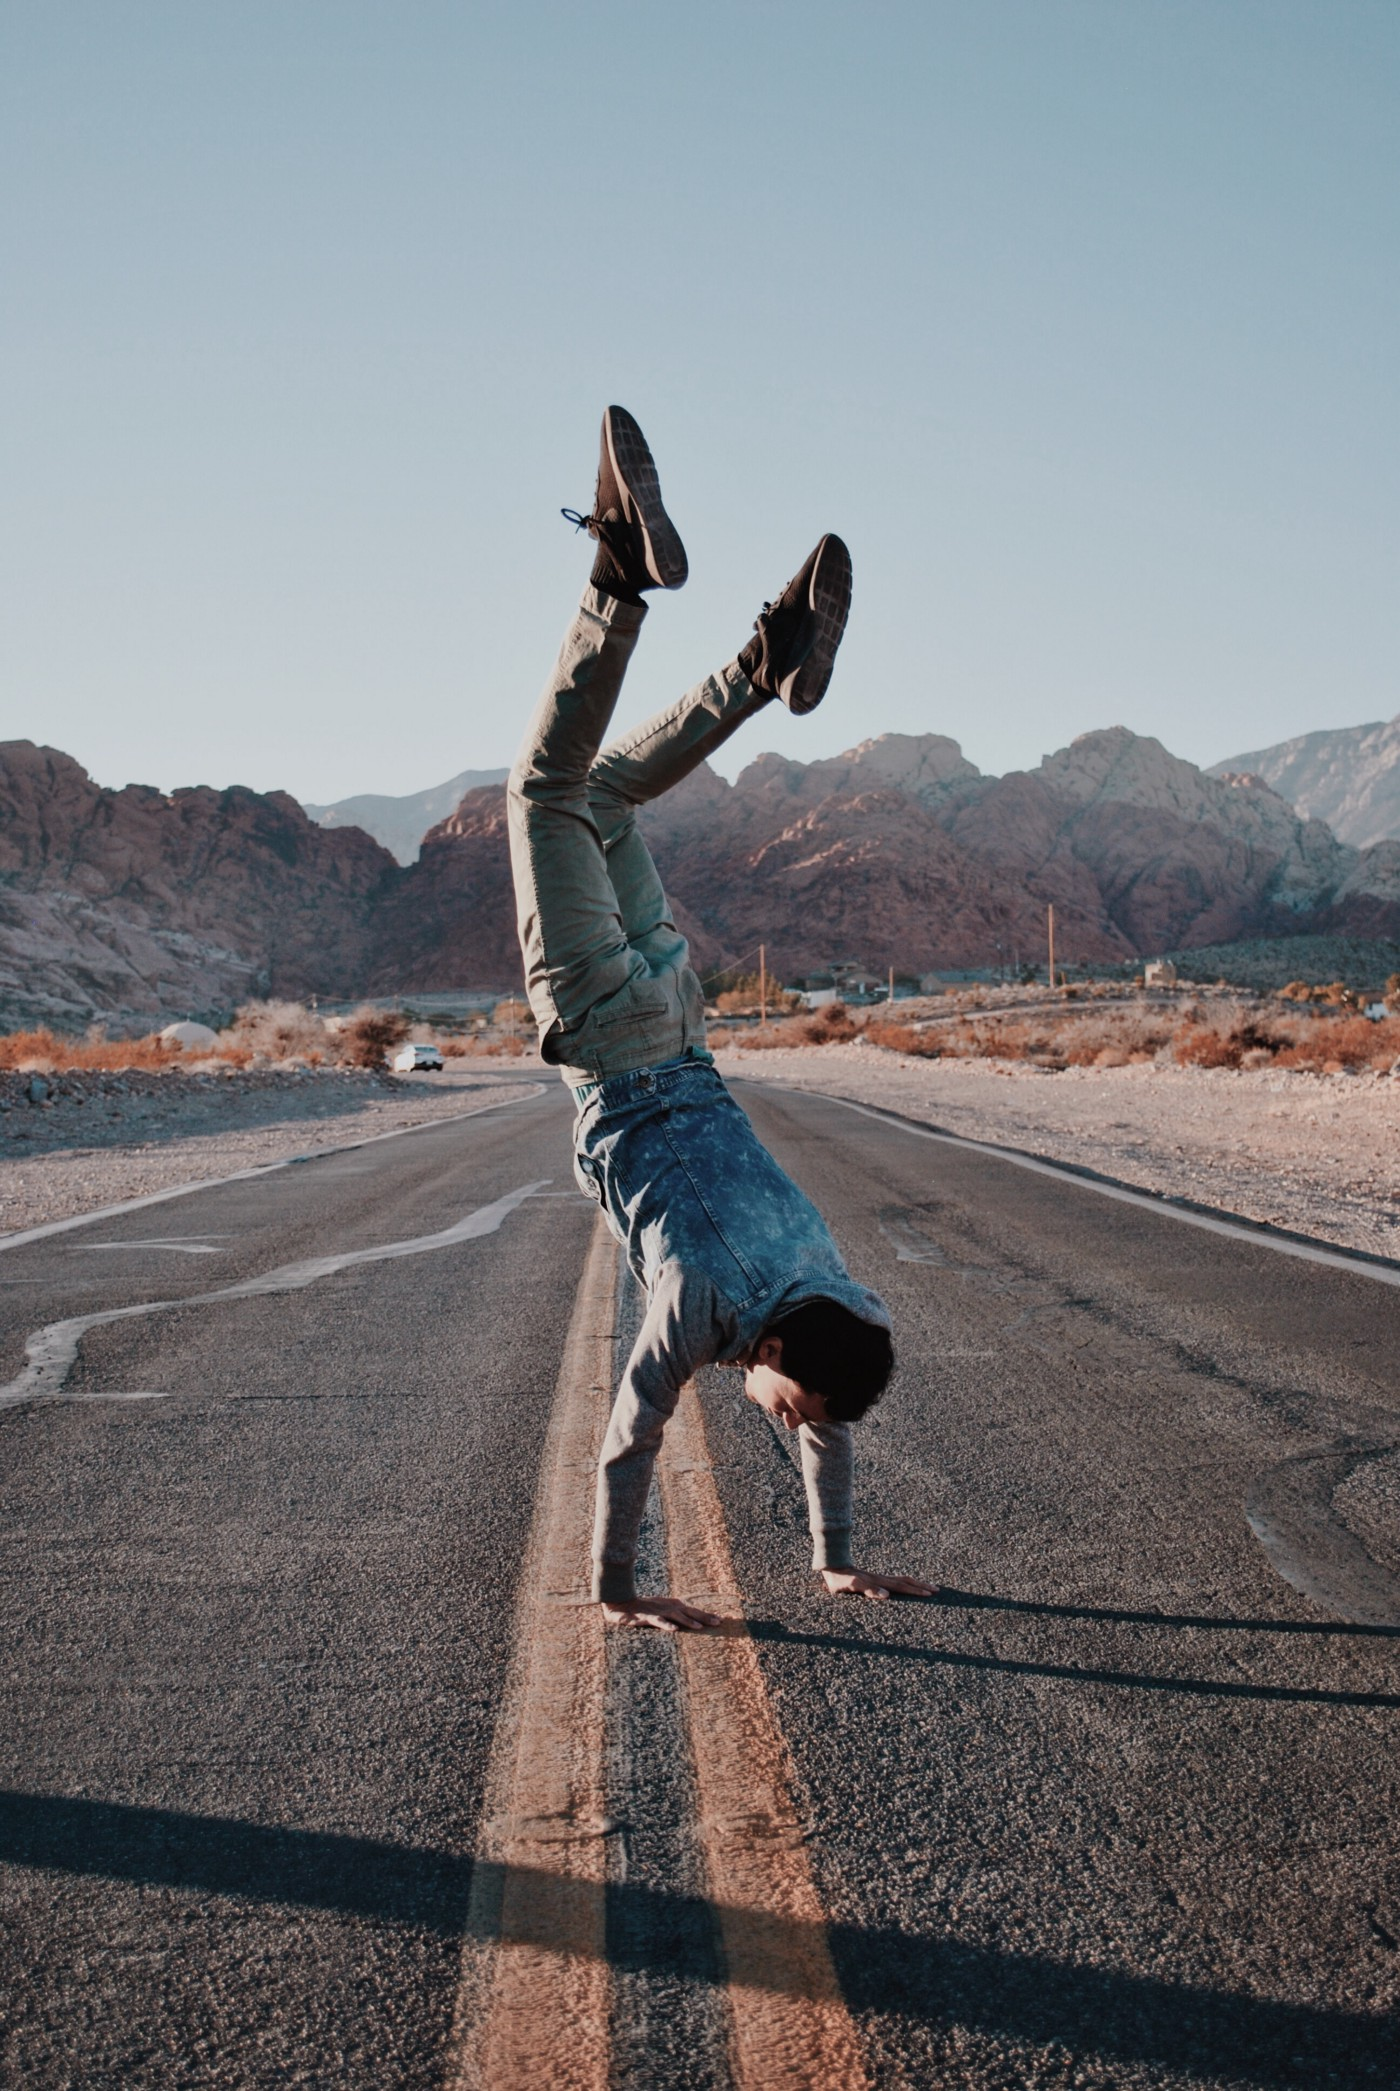 photo of a young man in the middle of a desert road doing a hand-stand